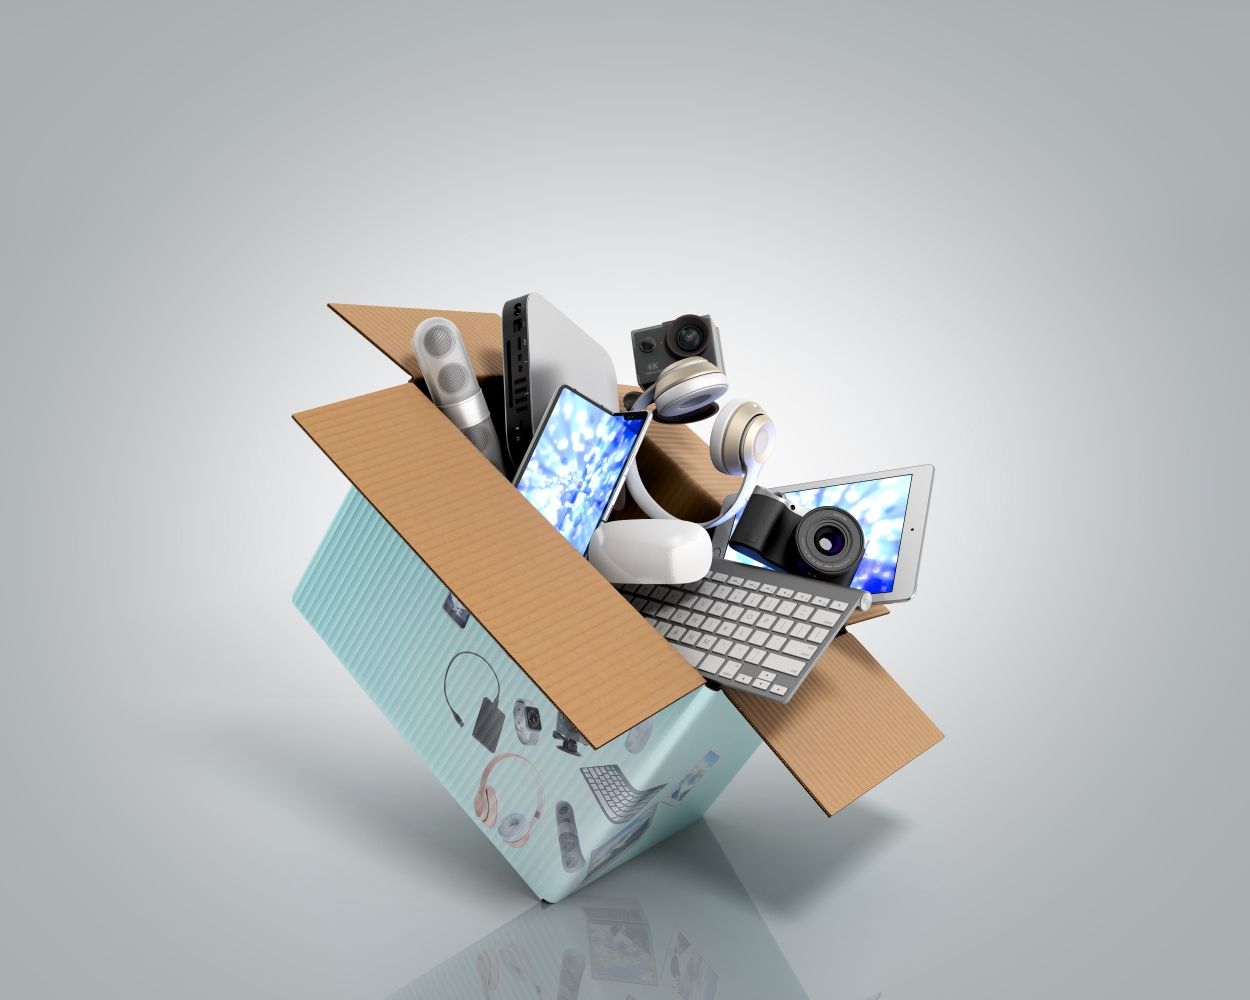 Working Used & NEW Wireless Products | Apple, Sonos, Bose, Microsoft, Bang and Olufsen | Laptops, Tablets, Headphones